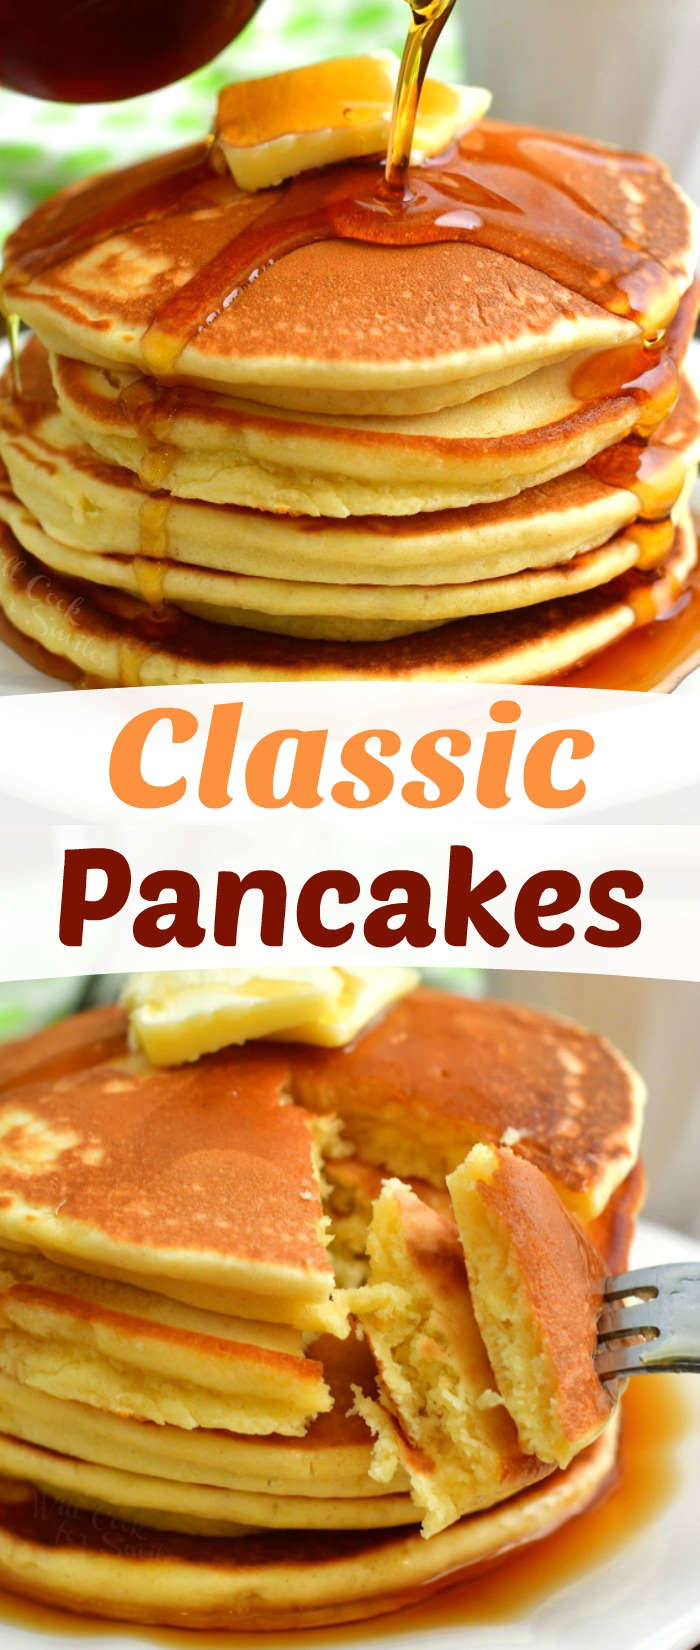 These Classic Pancakes Is Absolutely Perfect Soft And Fluffy Quick And Easy Breakfast Will Make A Beau Classic Pancake Recipe Best Breakfast Recipes Recipes